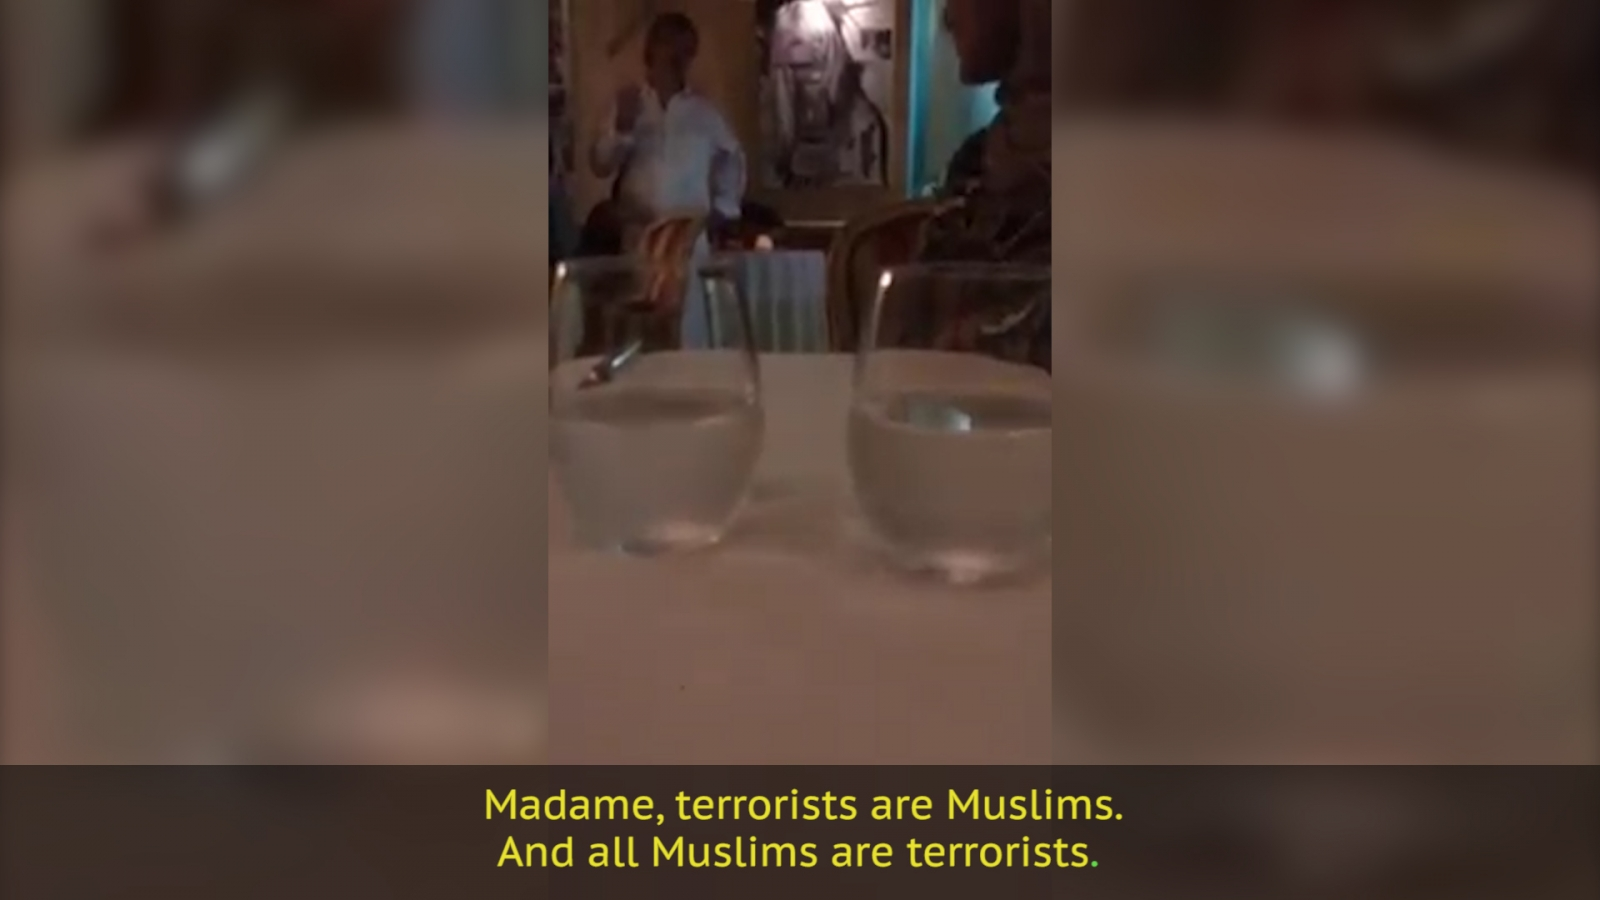 France: Two Muslim women thrown out of restaurant by manager for wearing hijabs